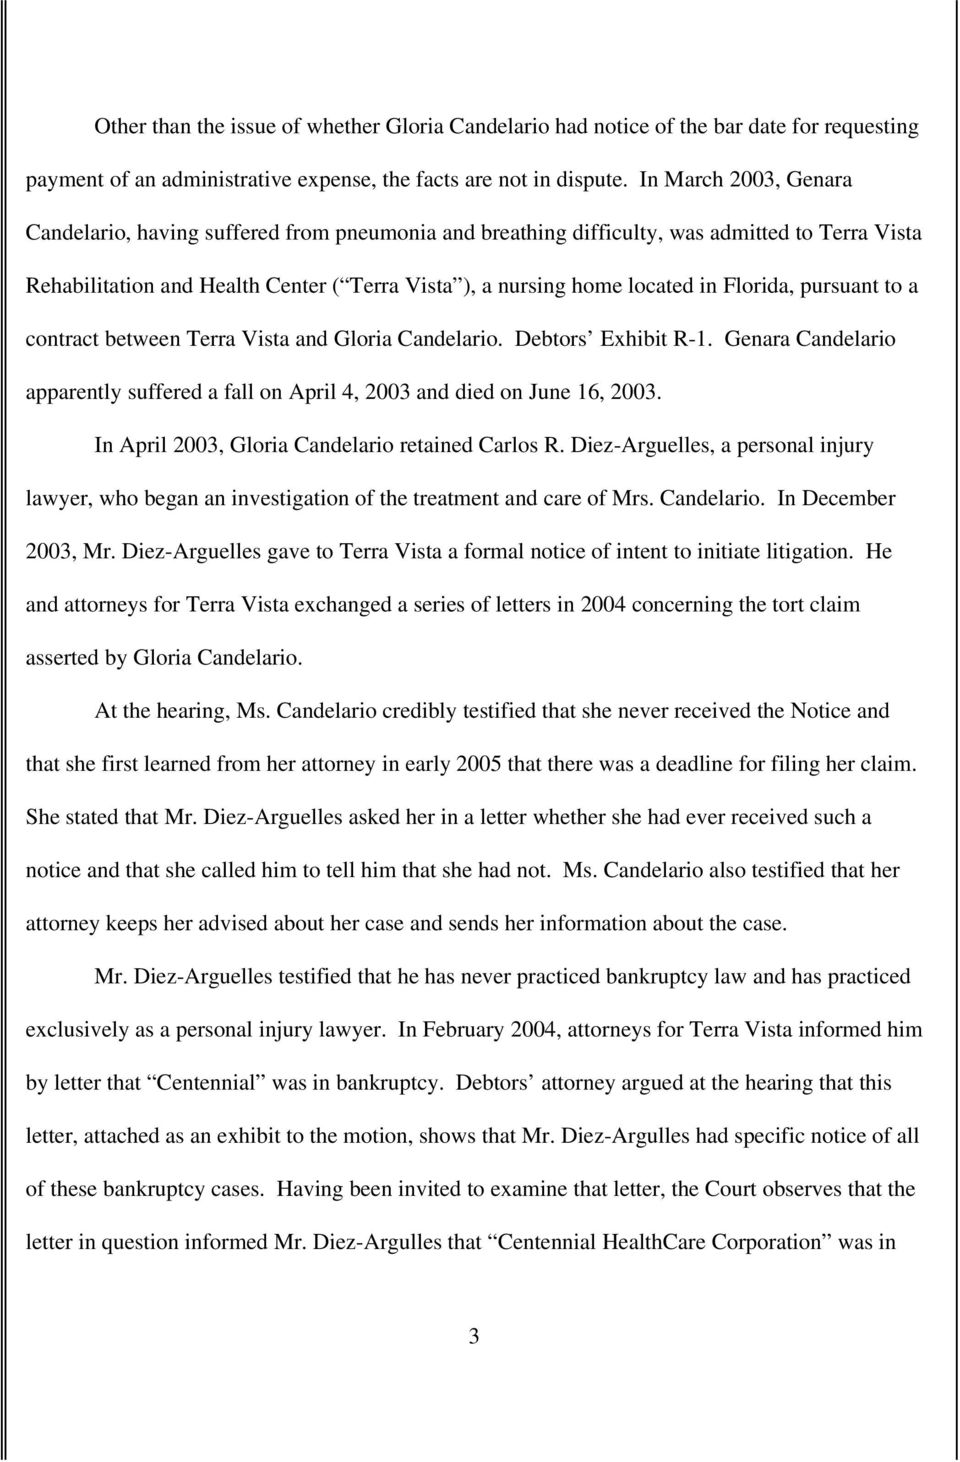 Florida, pursuant to a contract between Terra Vista and Gloria Candelario. Debtors Exhibit R-1. Genara Candelario apparently suffered a fall on April 4, 2003 and died on June 16, 2003.